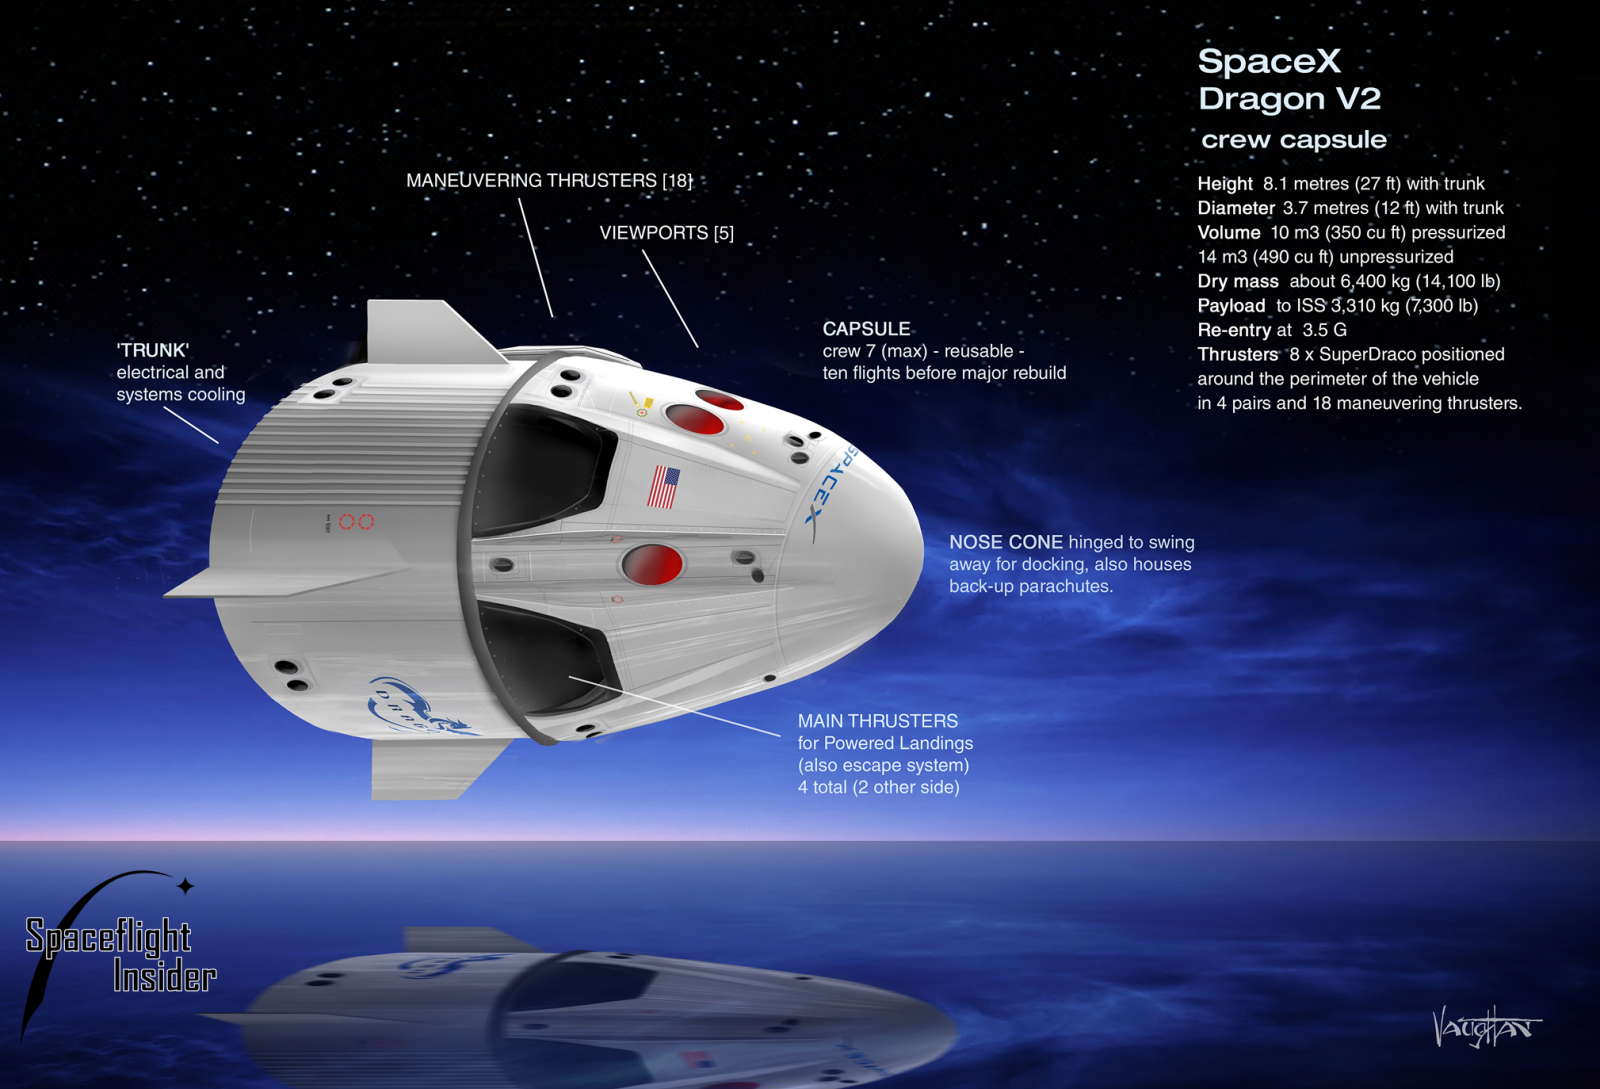 SpaceX Crew Dragon infographic image credit James Vaughan SpaceFlight Insider